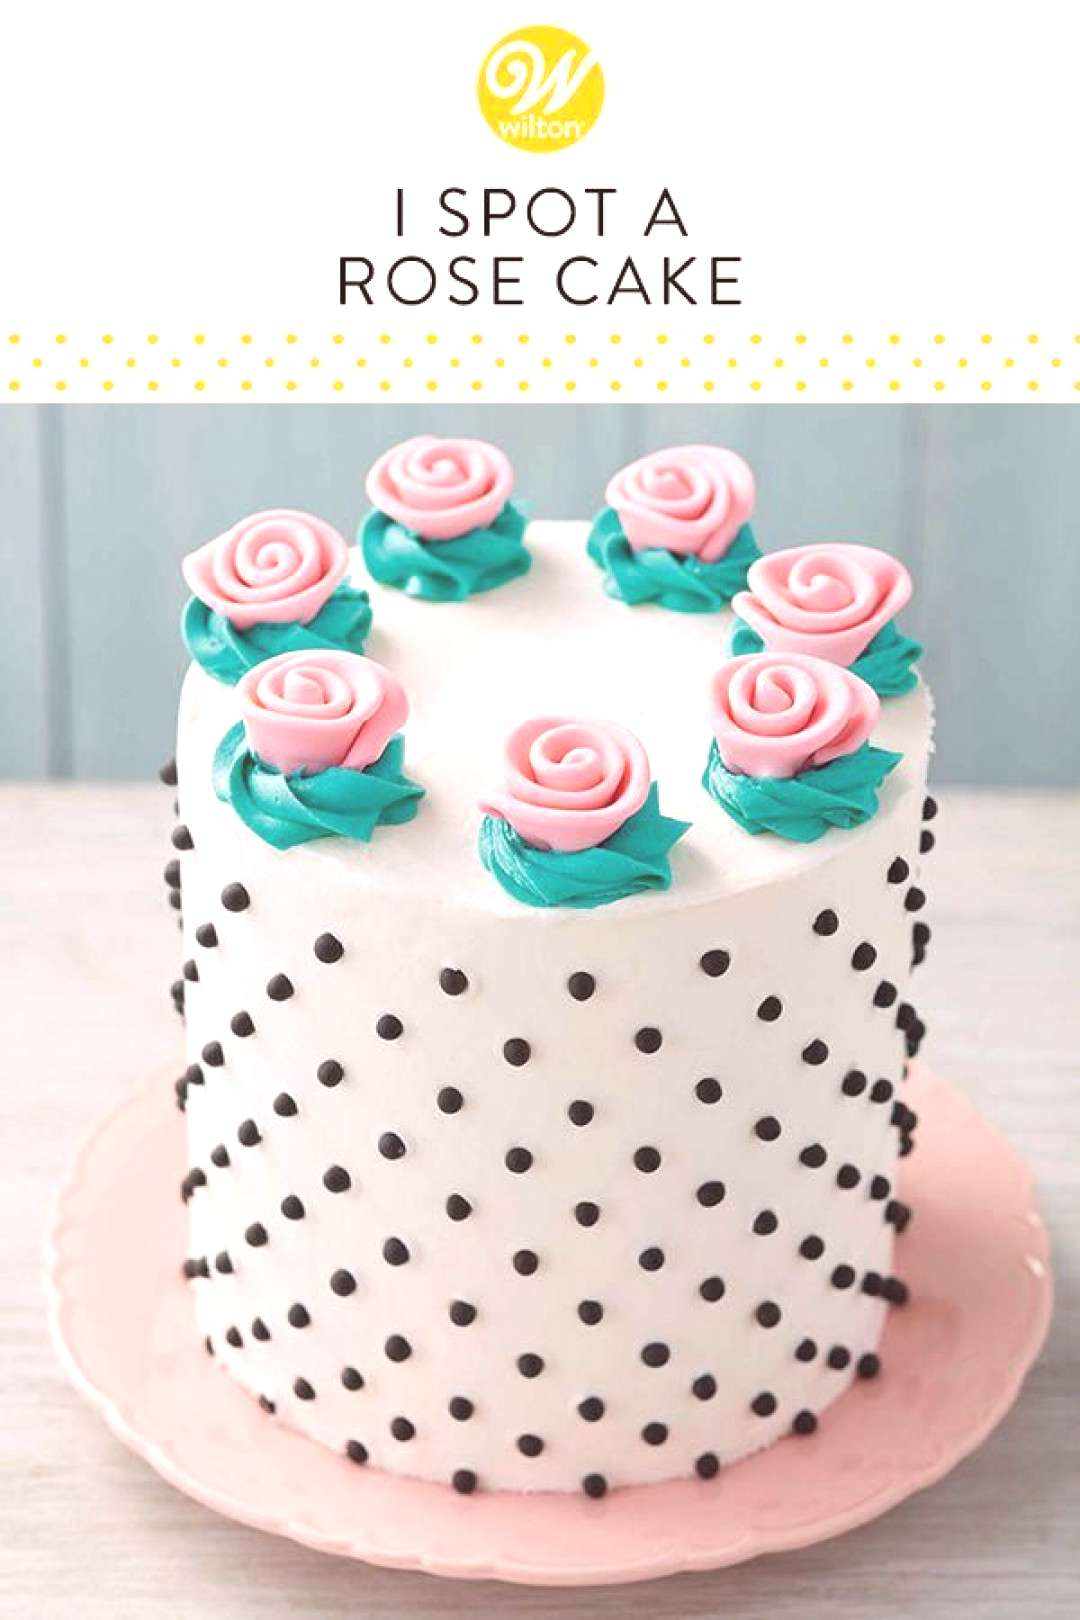 Whether you're celebrating Mother's Day, a wedding shower or a birthday party, this I Spot a Ro